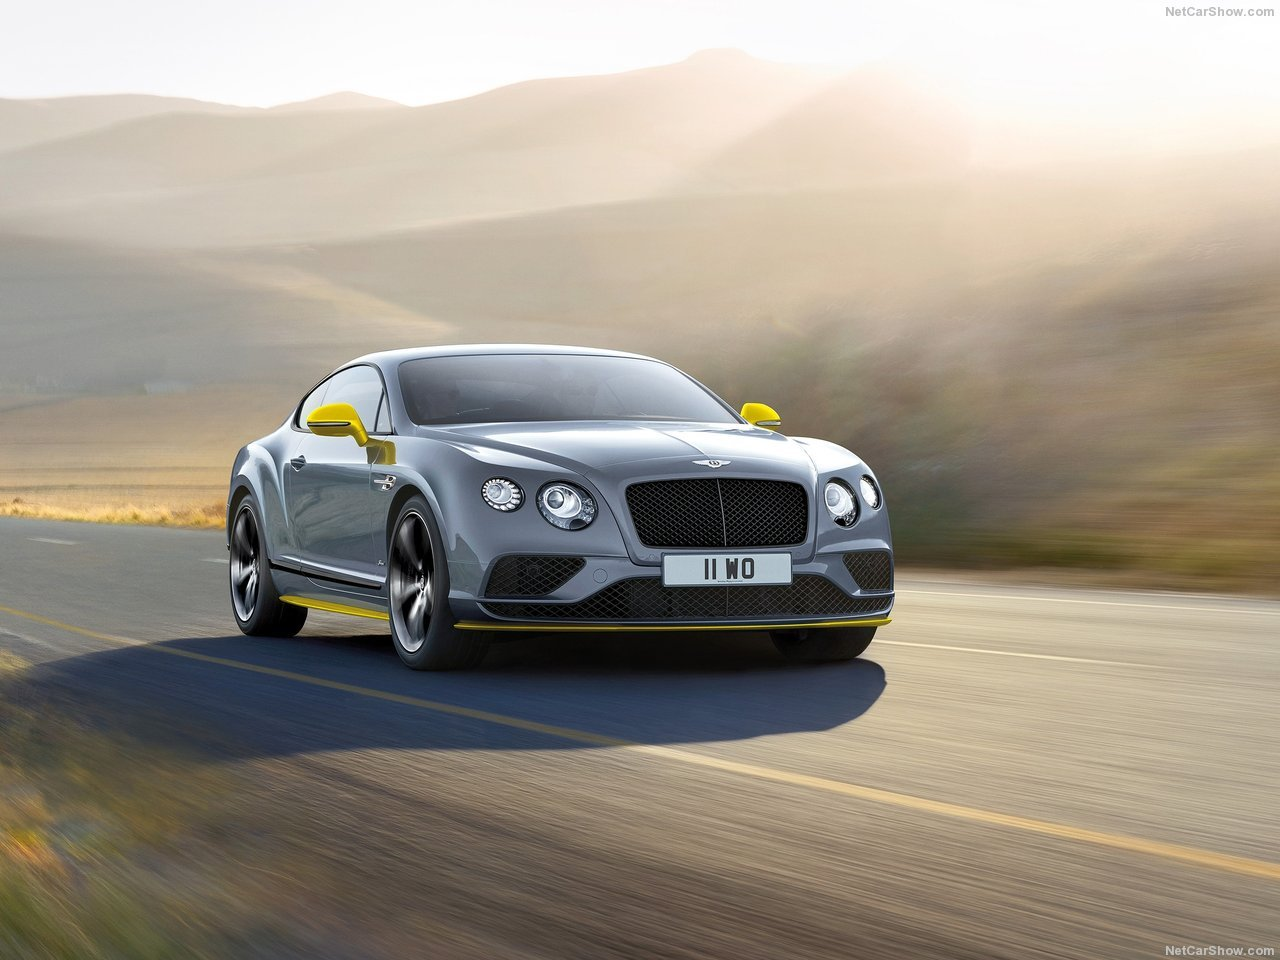 Bentley Continental GT Speed Black Edition (2017)